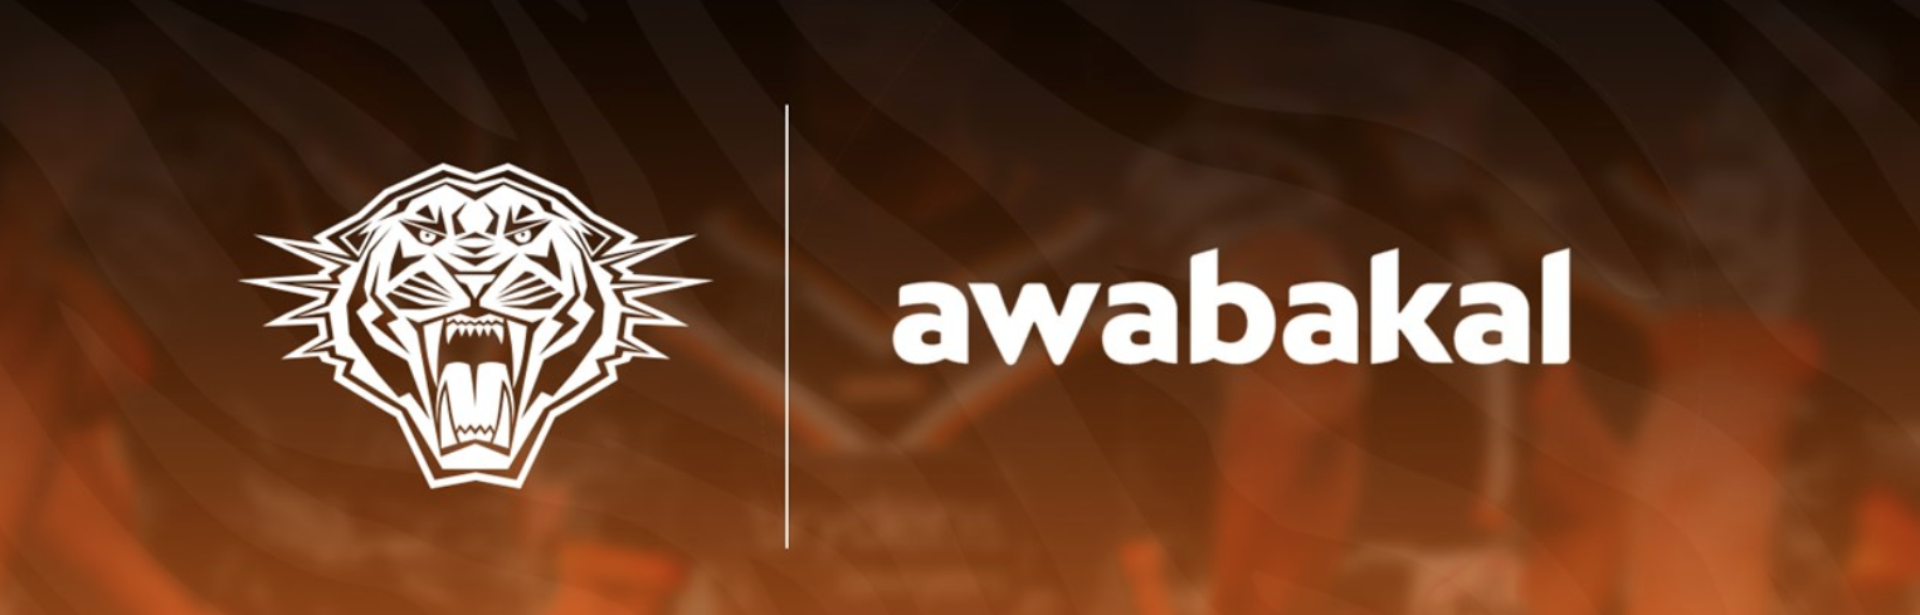 Awabakal Ltd lead the way with Wests Tigers partnership